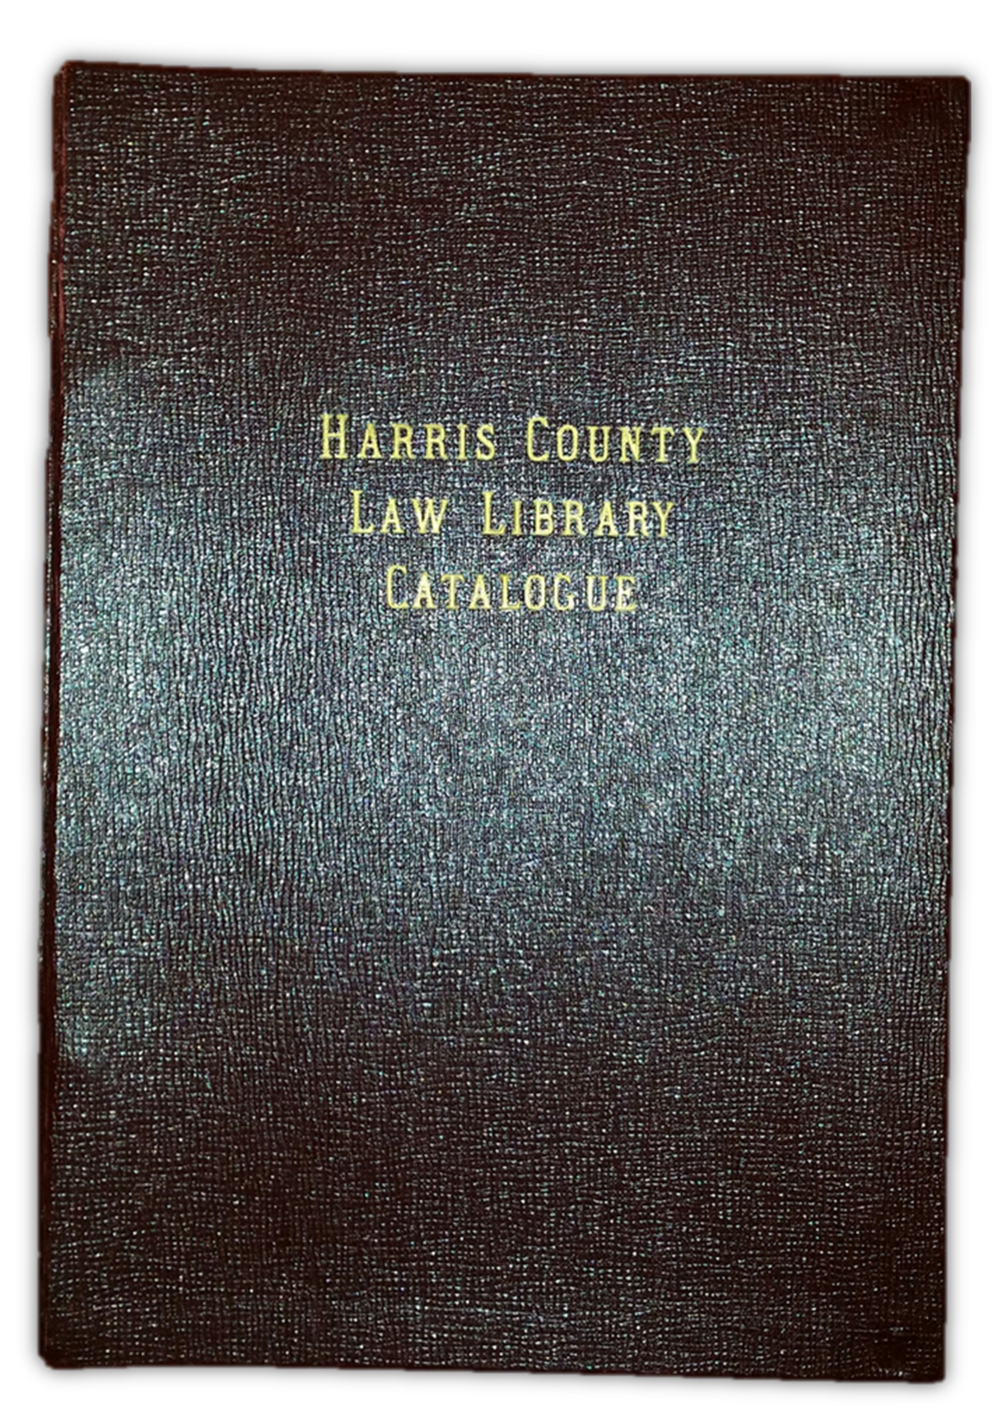 Photo of  Harris County Law Library   Catalogue